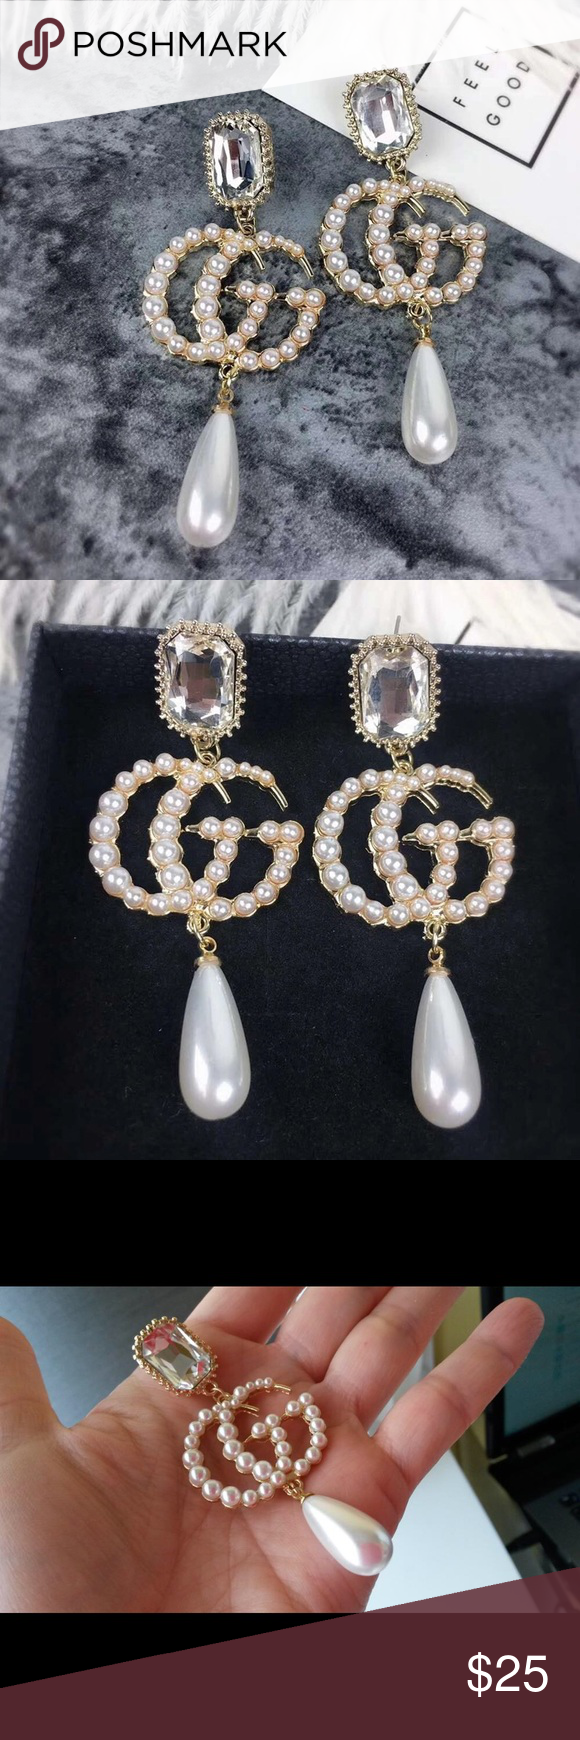 193ec6967 GG Drop Earrings New! Great designer inspired earrings ❤ Gucci Jewelry  Earrings